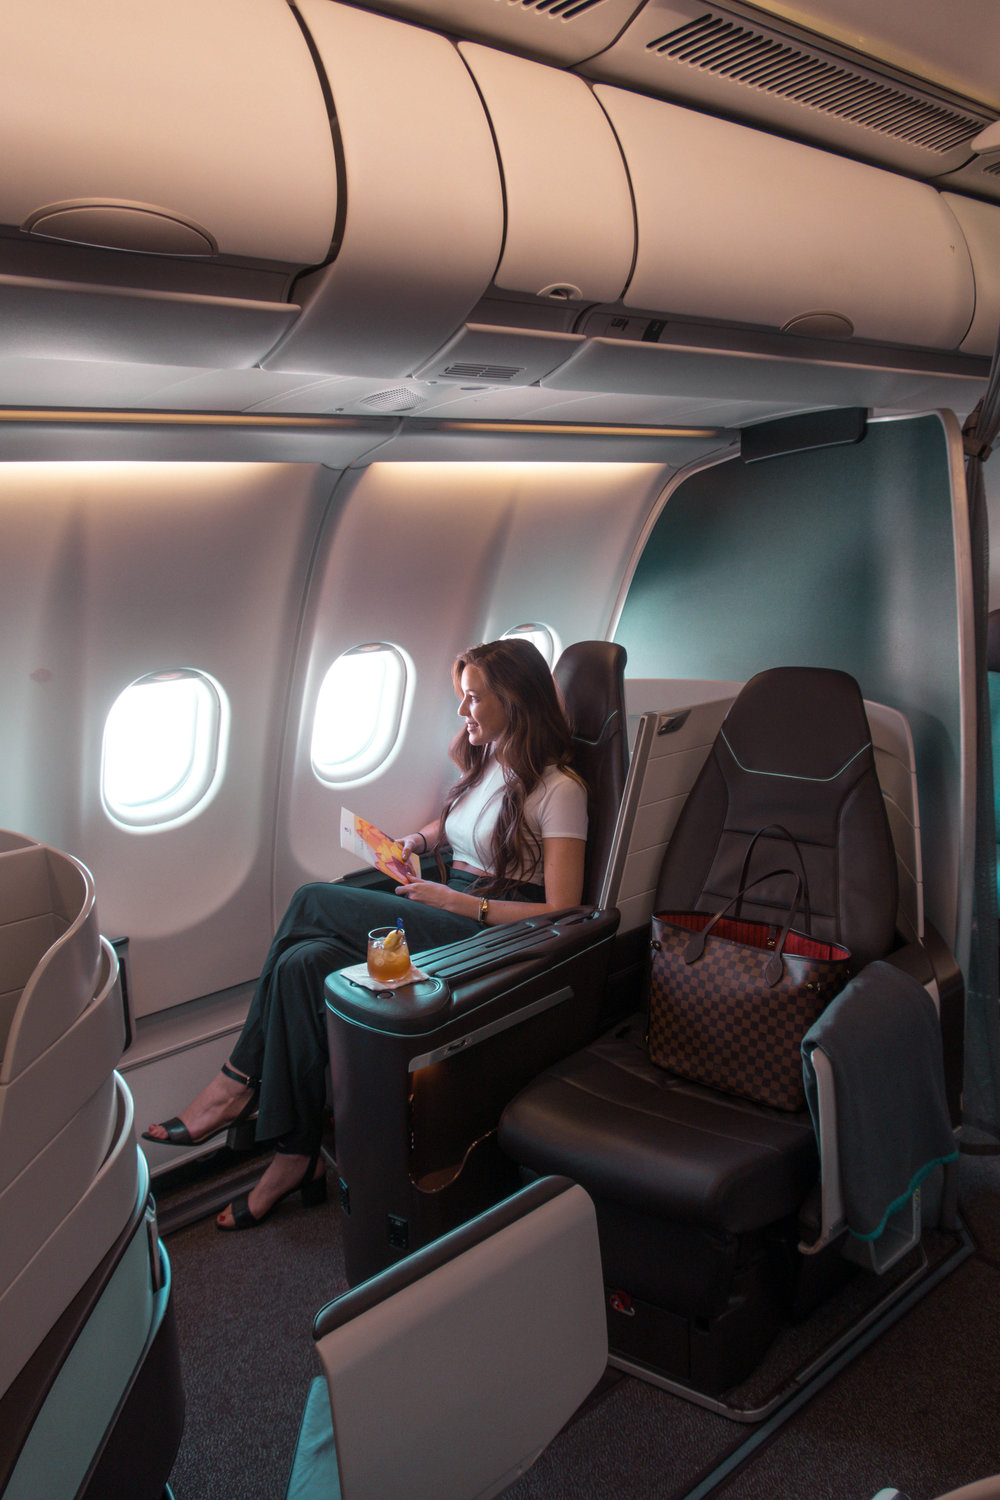 Hawaiian Airlines First Class Cabins feature lie-flat seats worthy of an international flight. Meal Service menus are designed by featured chefs renown on the islands.